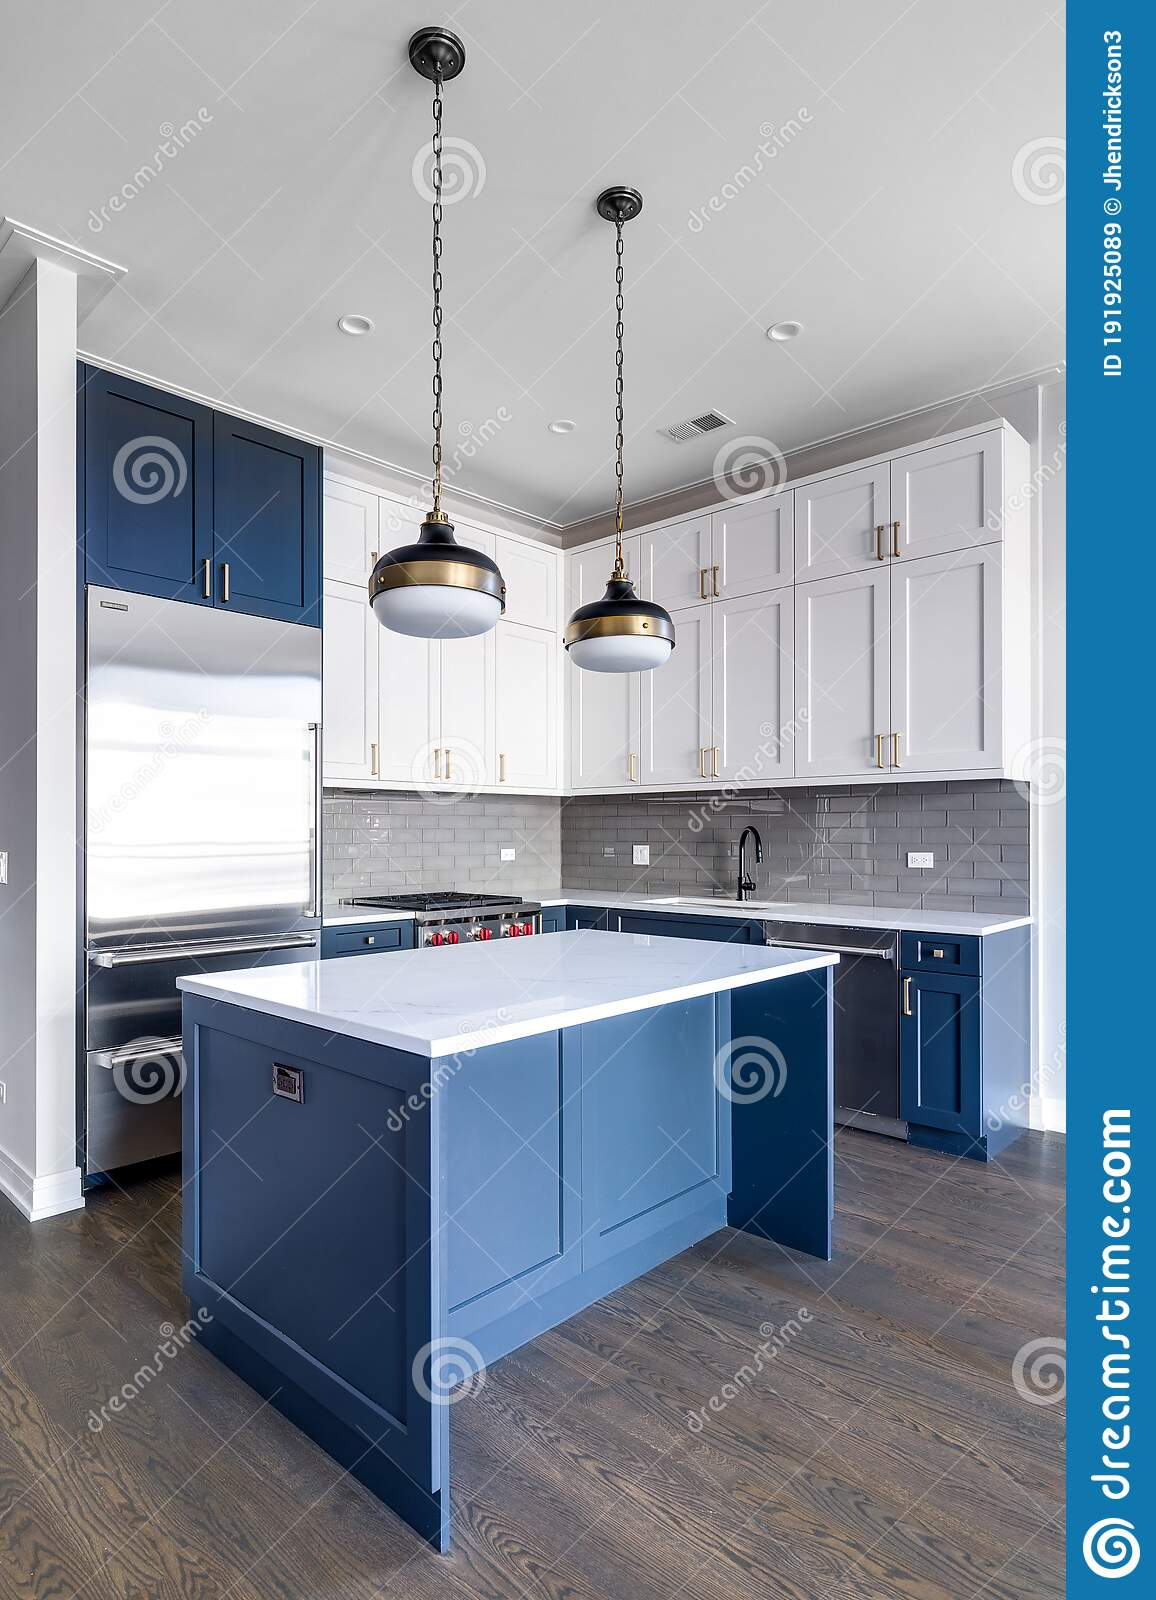 A Modern Kitchen With Blue And White Cabinets Editorial Stock Image Image Of Cabinet Estate 191925089